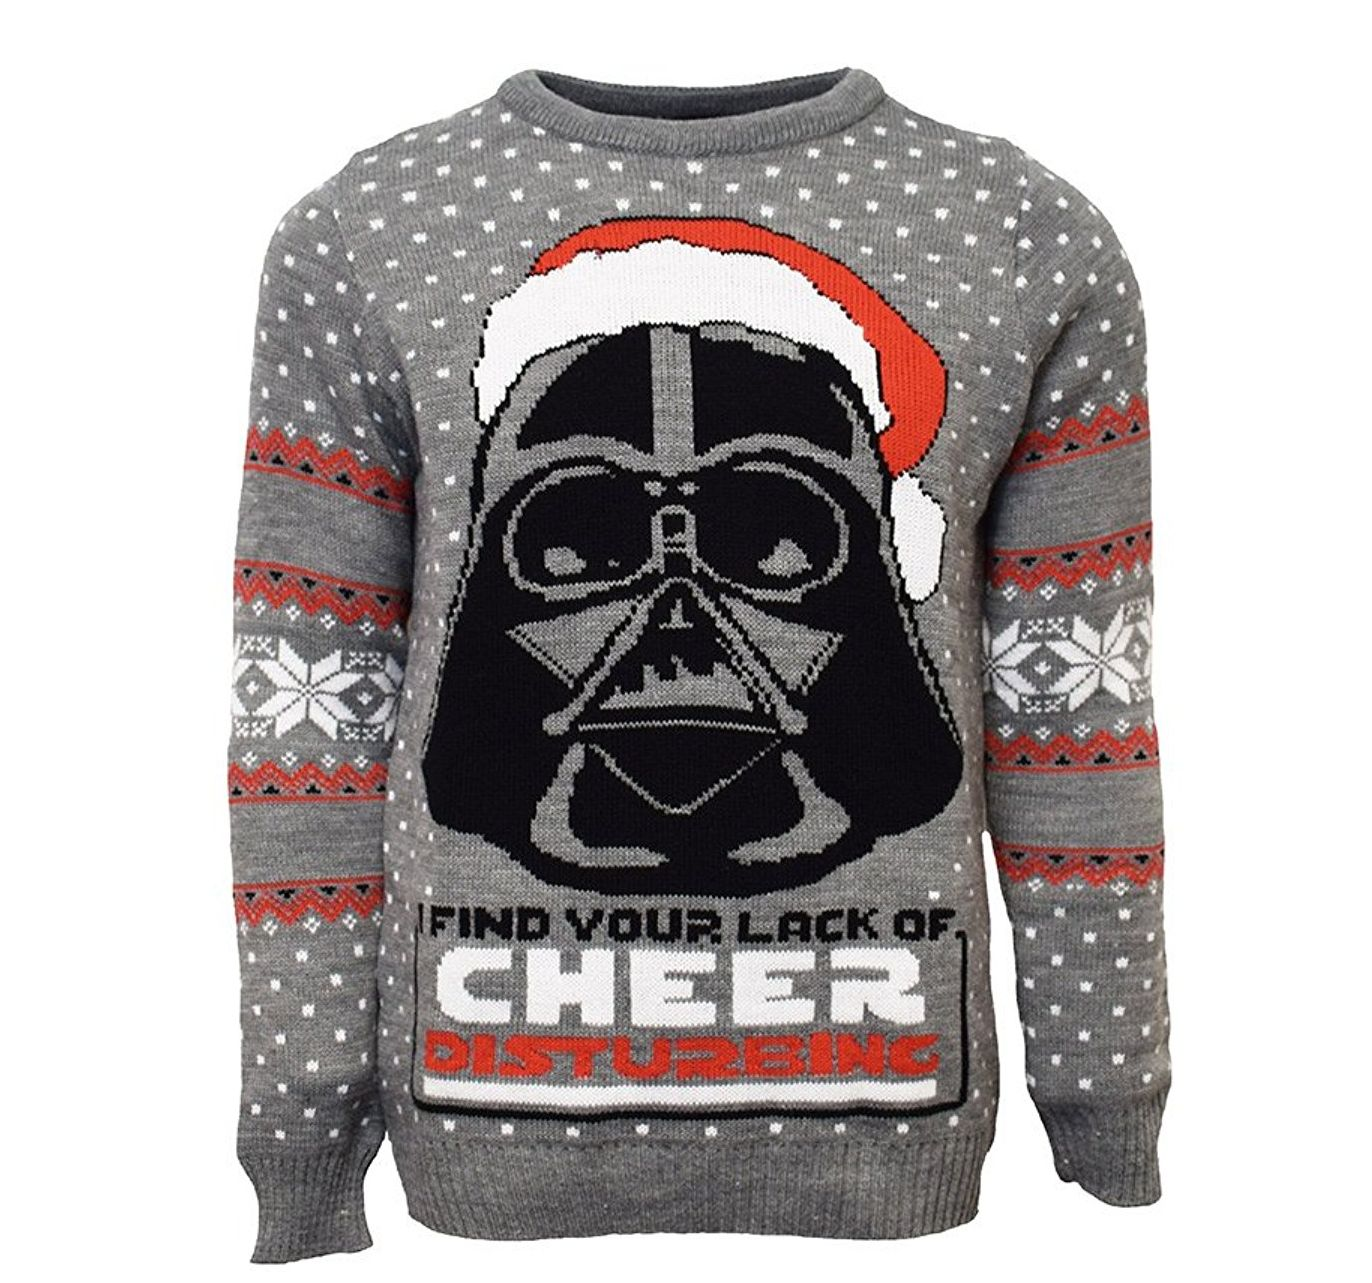 "Ugly Christmas Sweater mit Darth Vaders Kopf, der eine Nikolaus-Mütze trägt und den Worten ""I find your lack of cheer disturbing"""